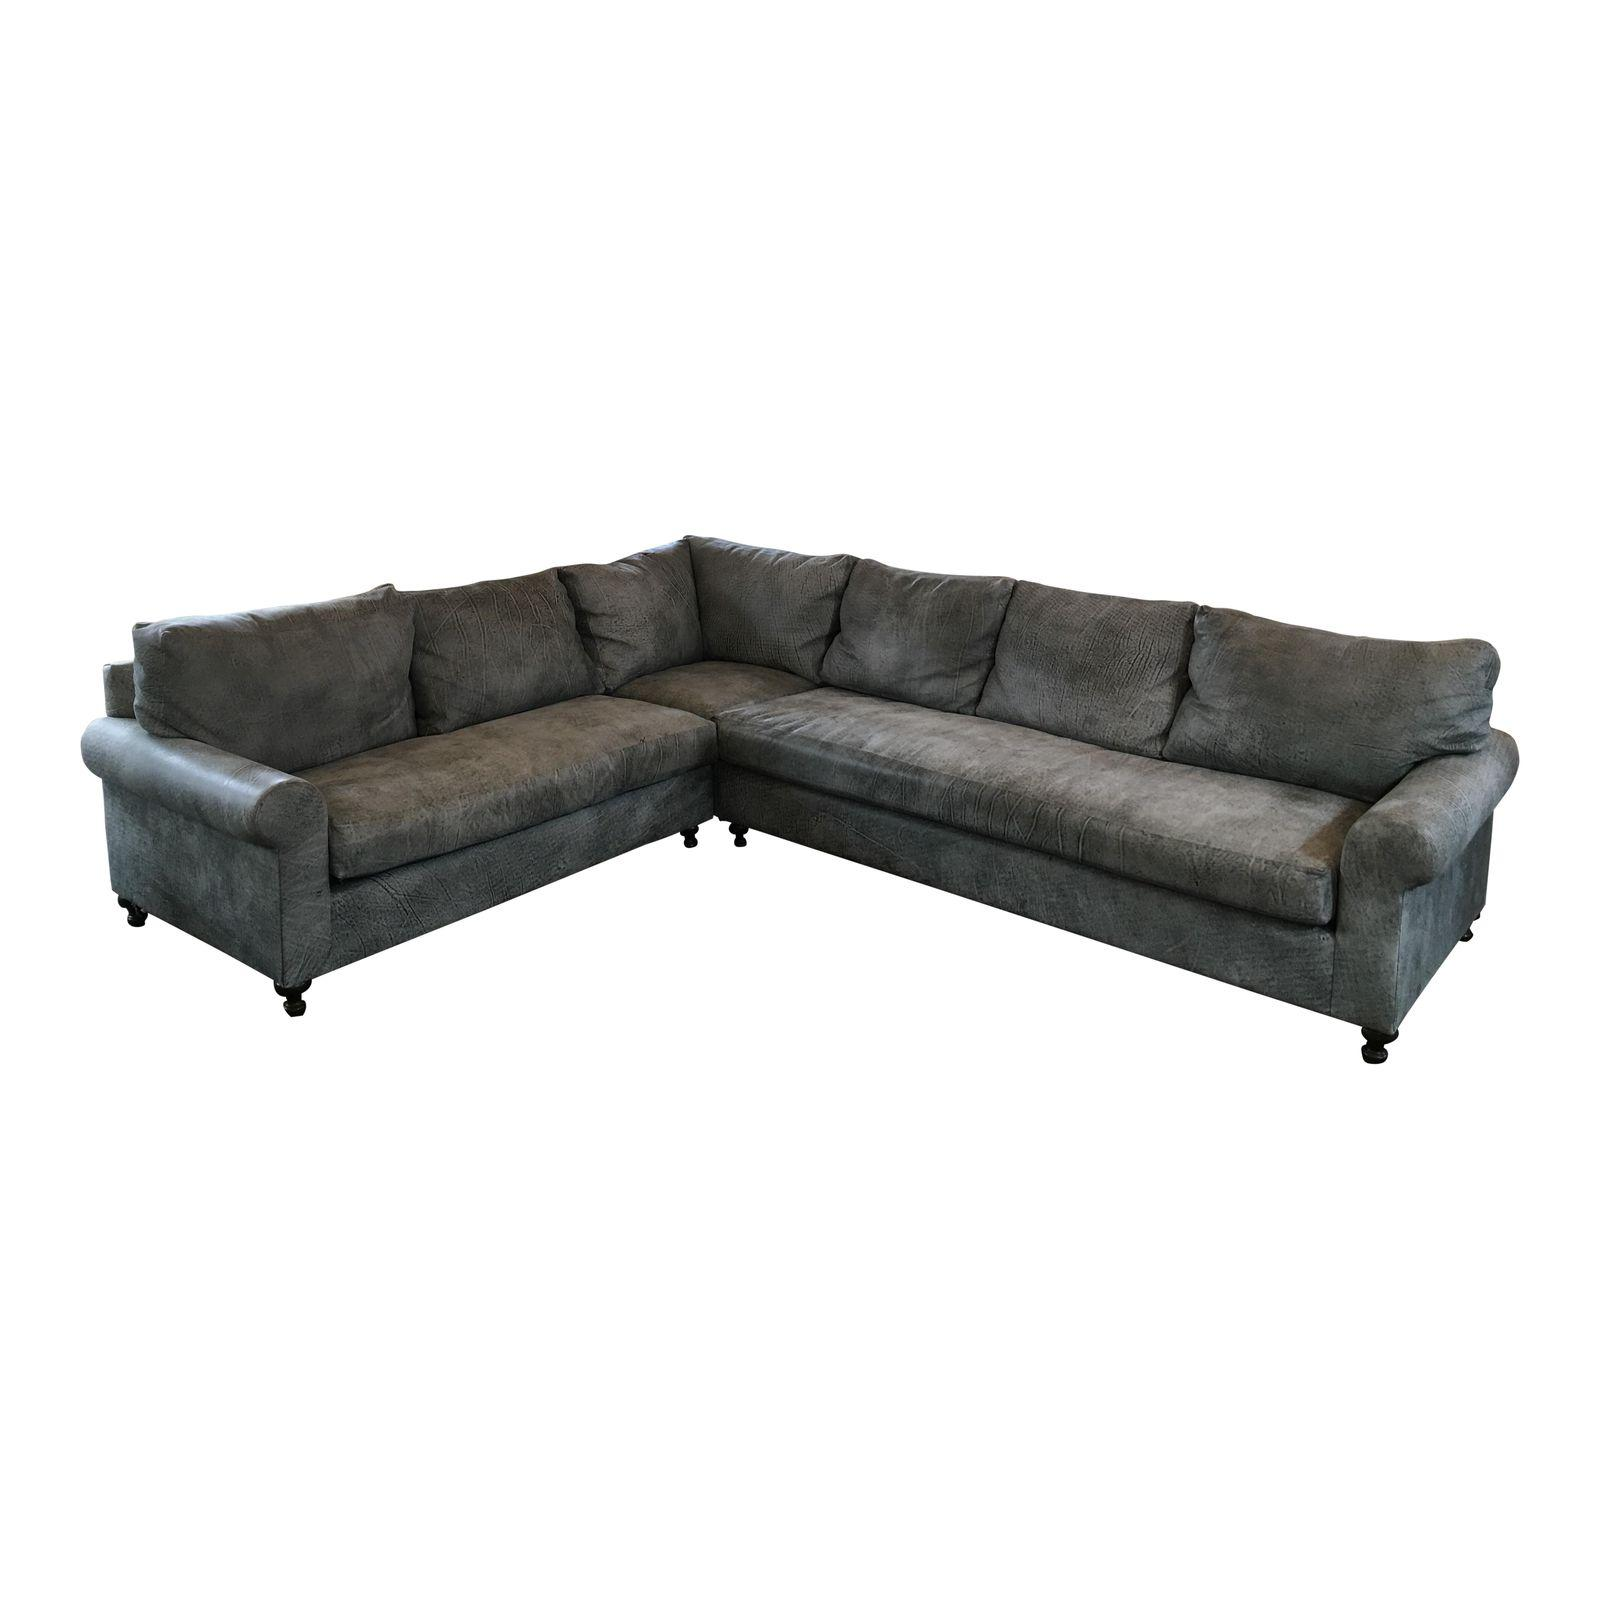 gray leather sectional sofas with recliners. Black Bedroom Furniture Sets. Home Design Ideas